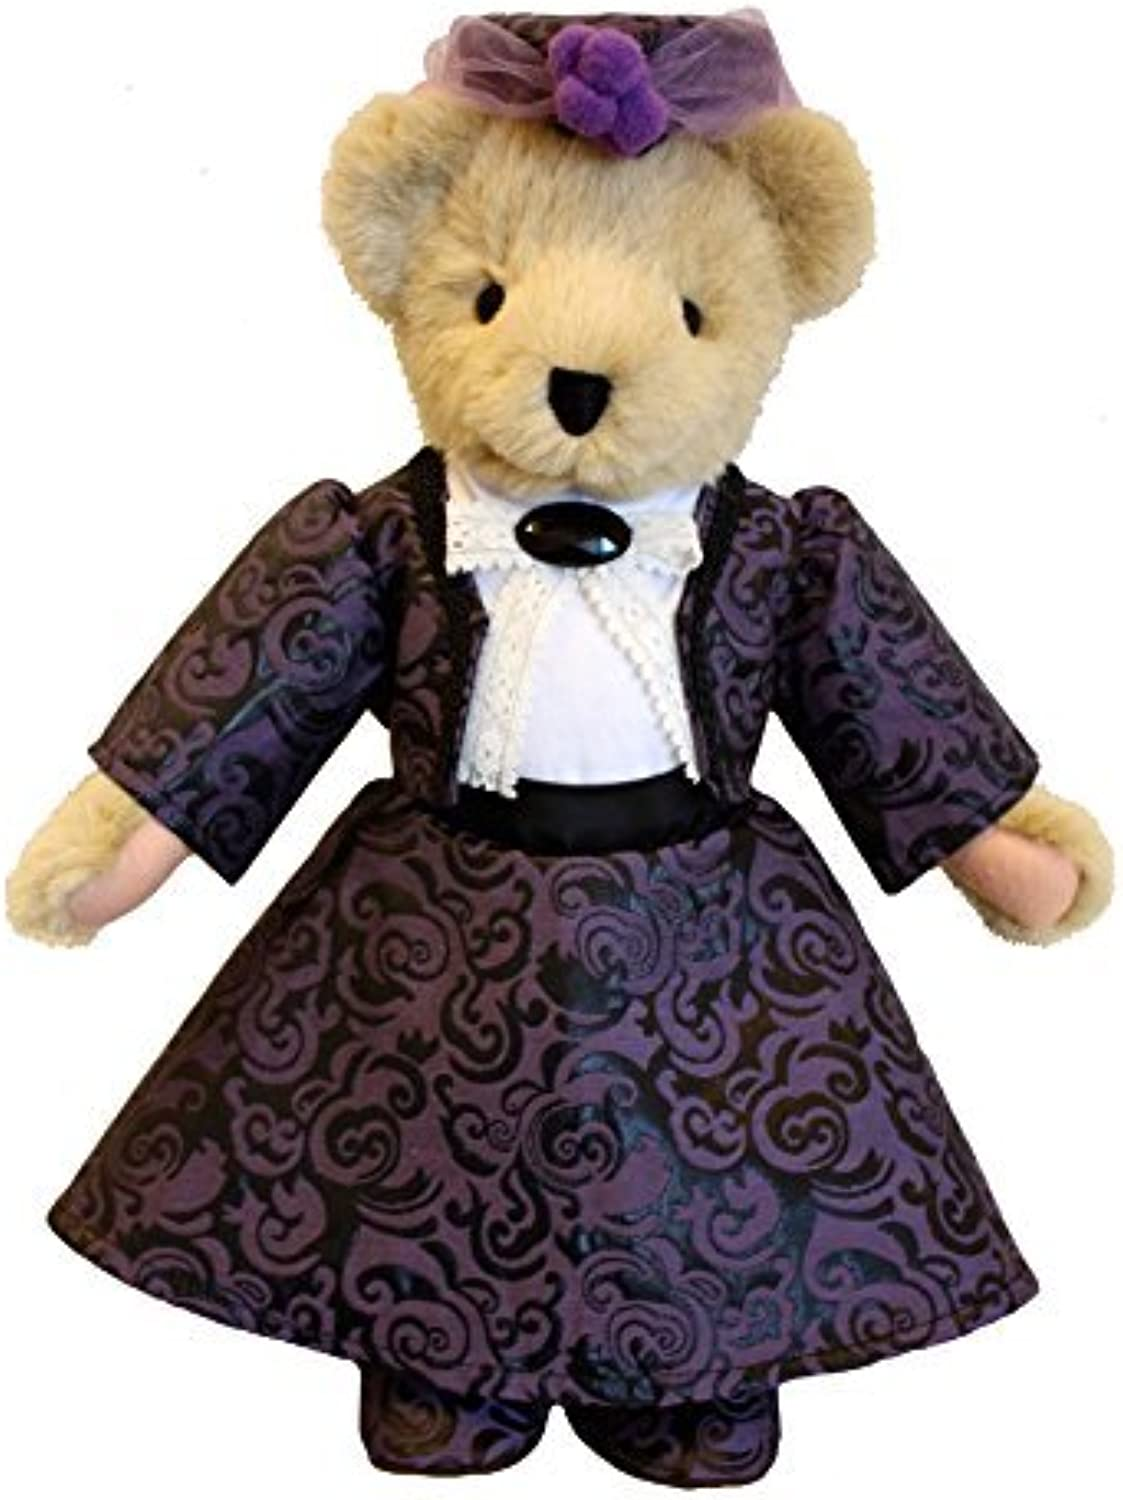 North American Bear Downton Abbey Collectible  lila Crawley Dowager Countess of Grantham Doll by North American Bear